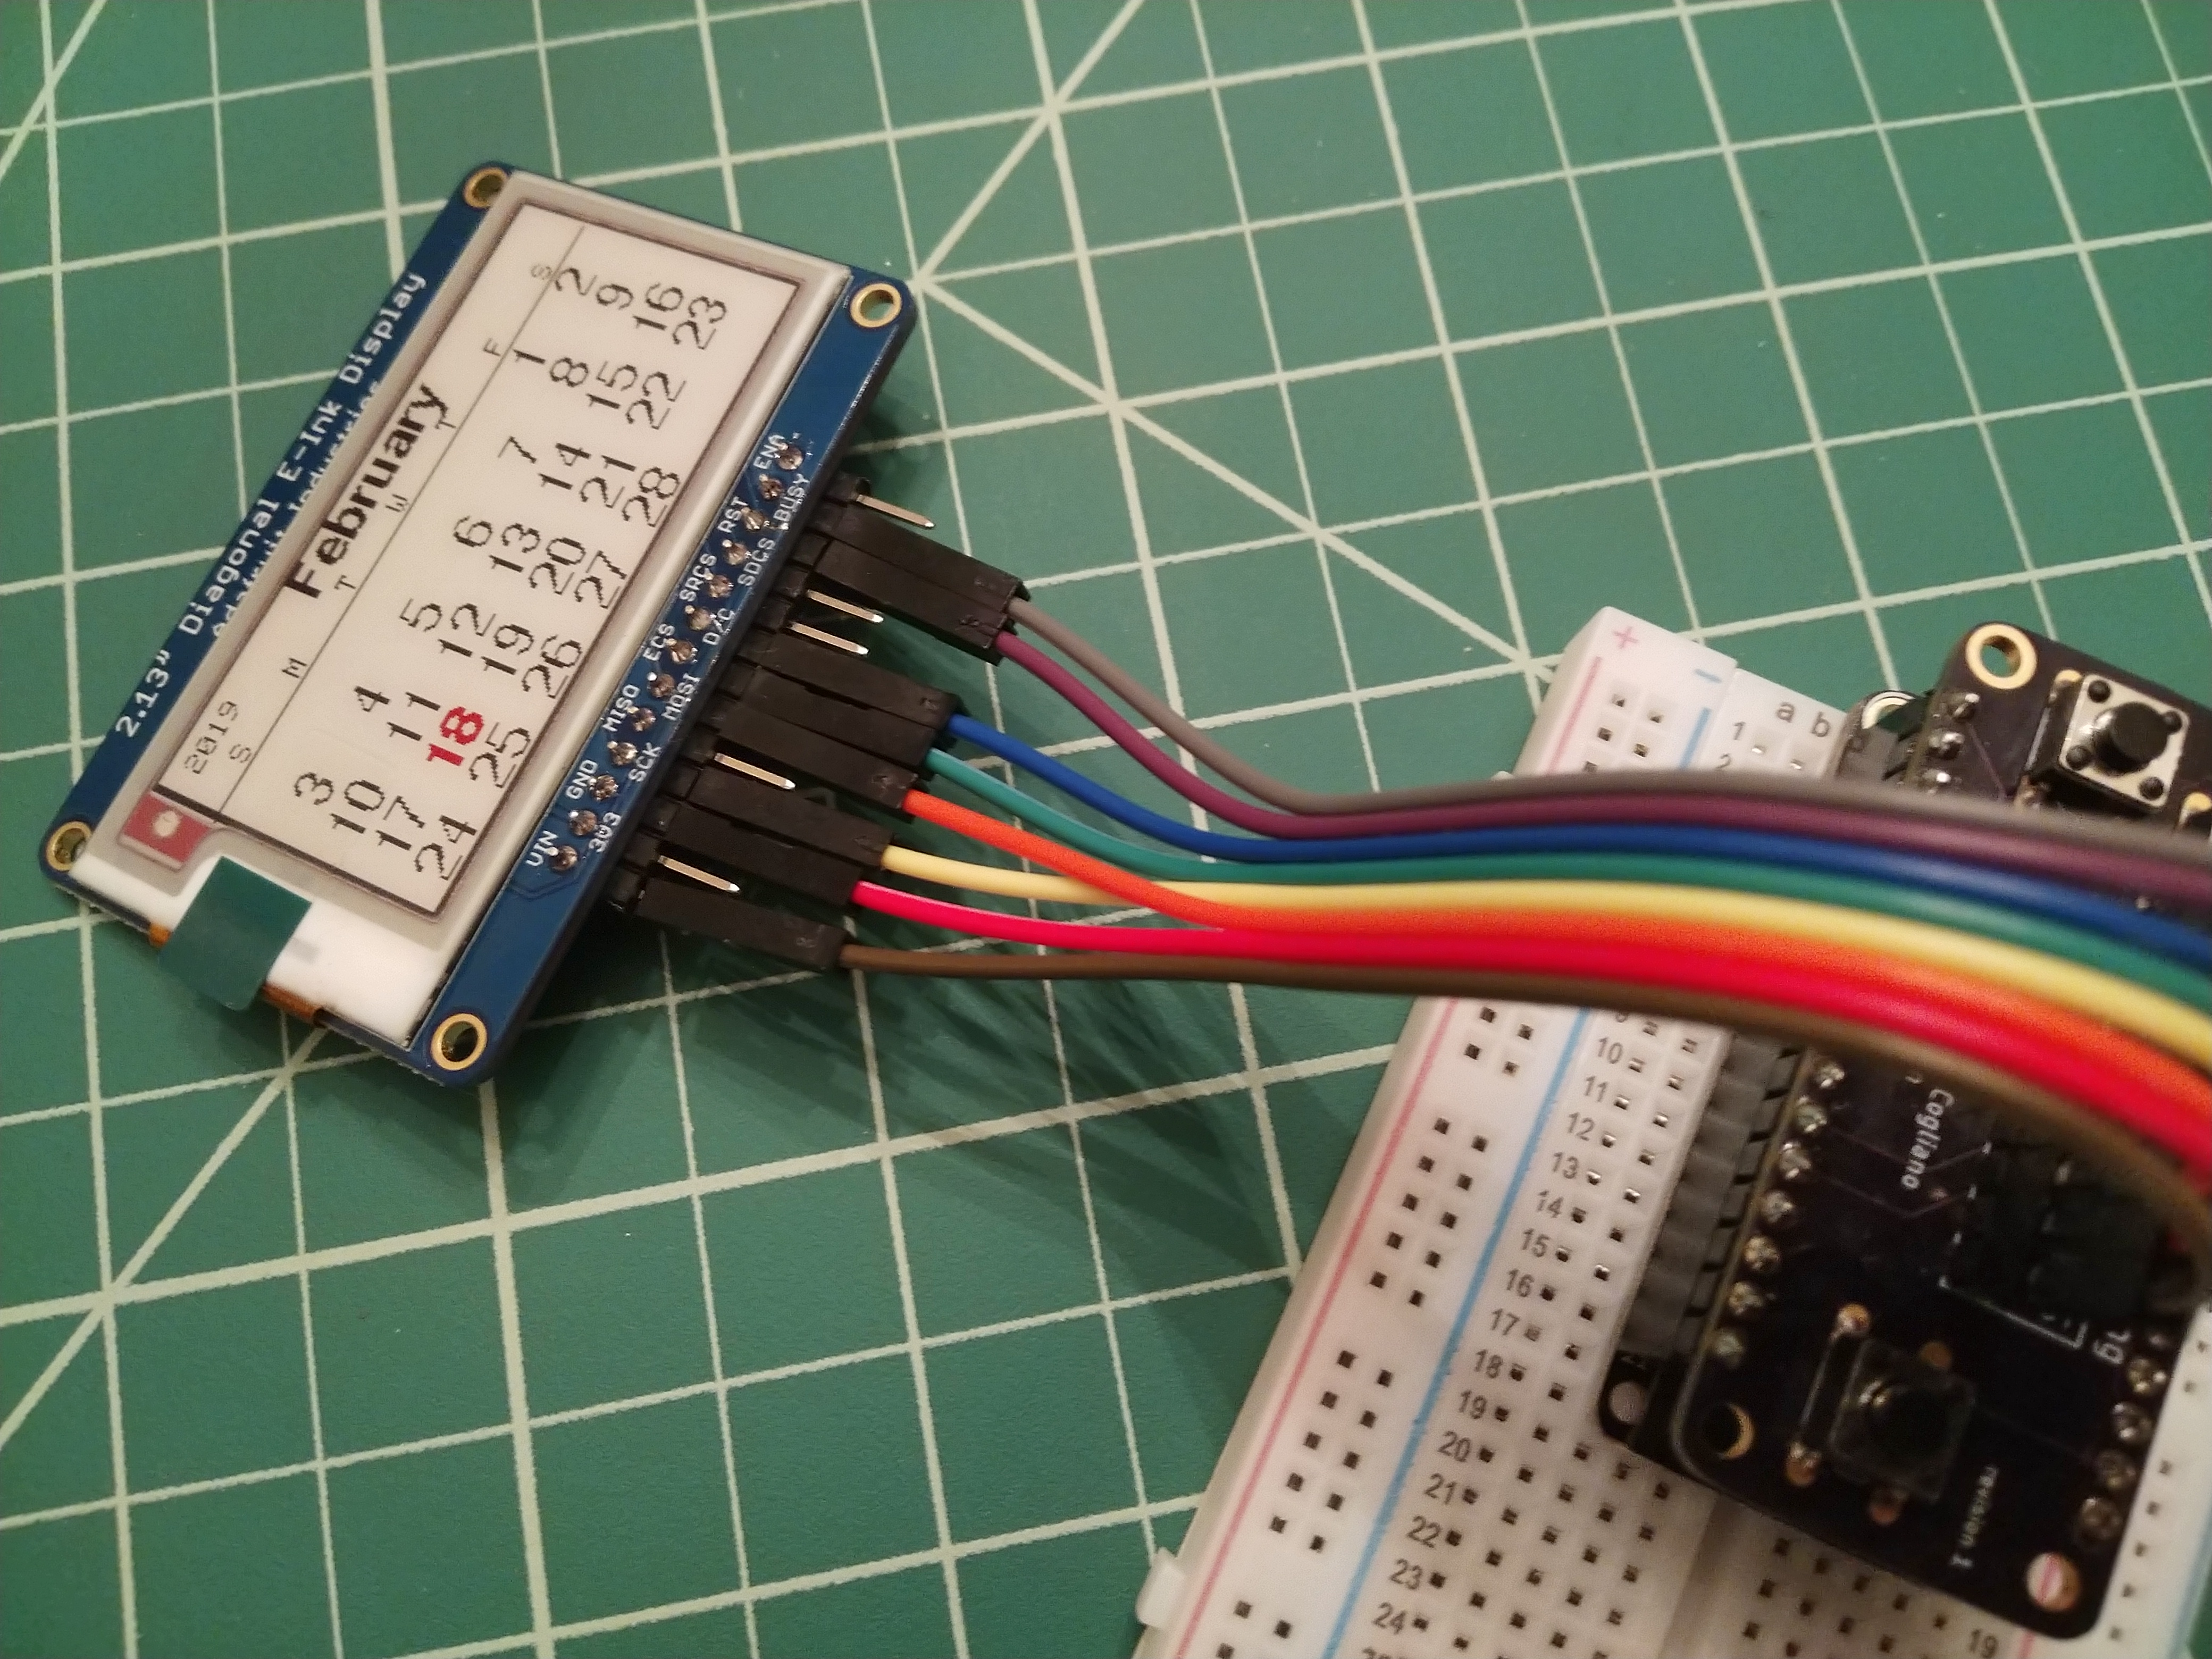 IoT Calendar: Using the Custom Featherwing with Adafruit Tri-Color e